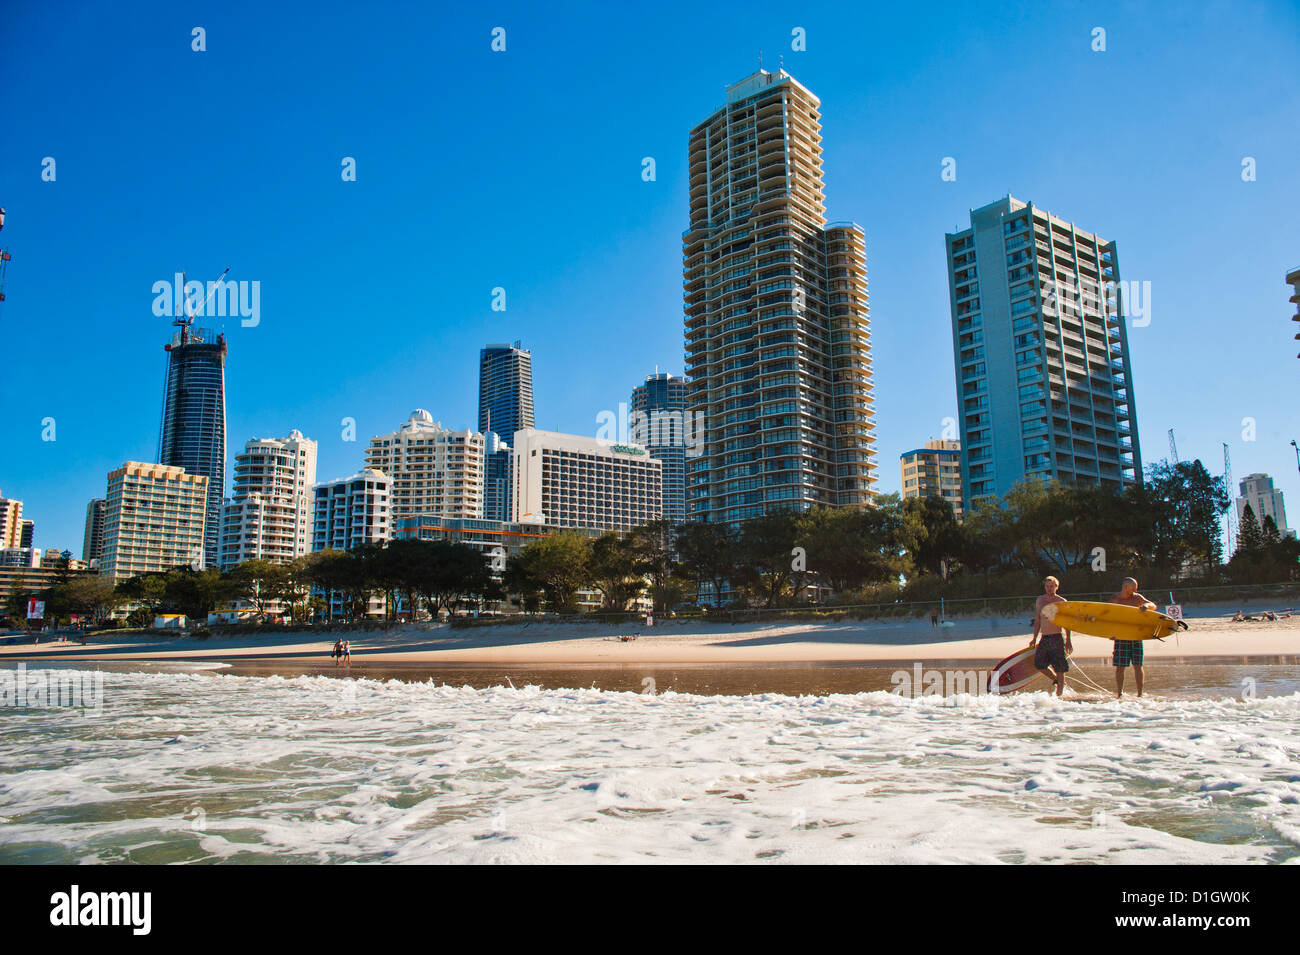 Surfers at Surfers Paradise, Gold Coast, Queensland, Australia, Pacific - Stock Image